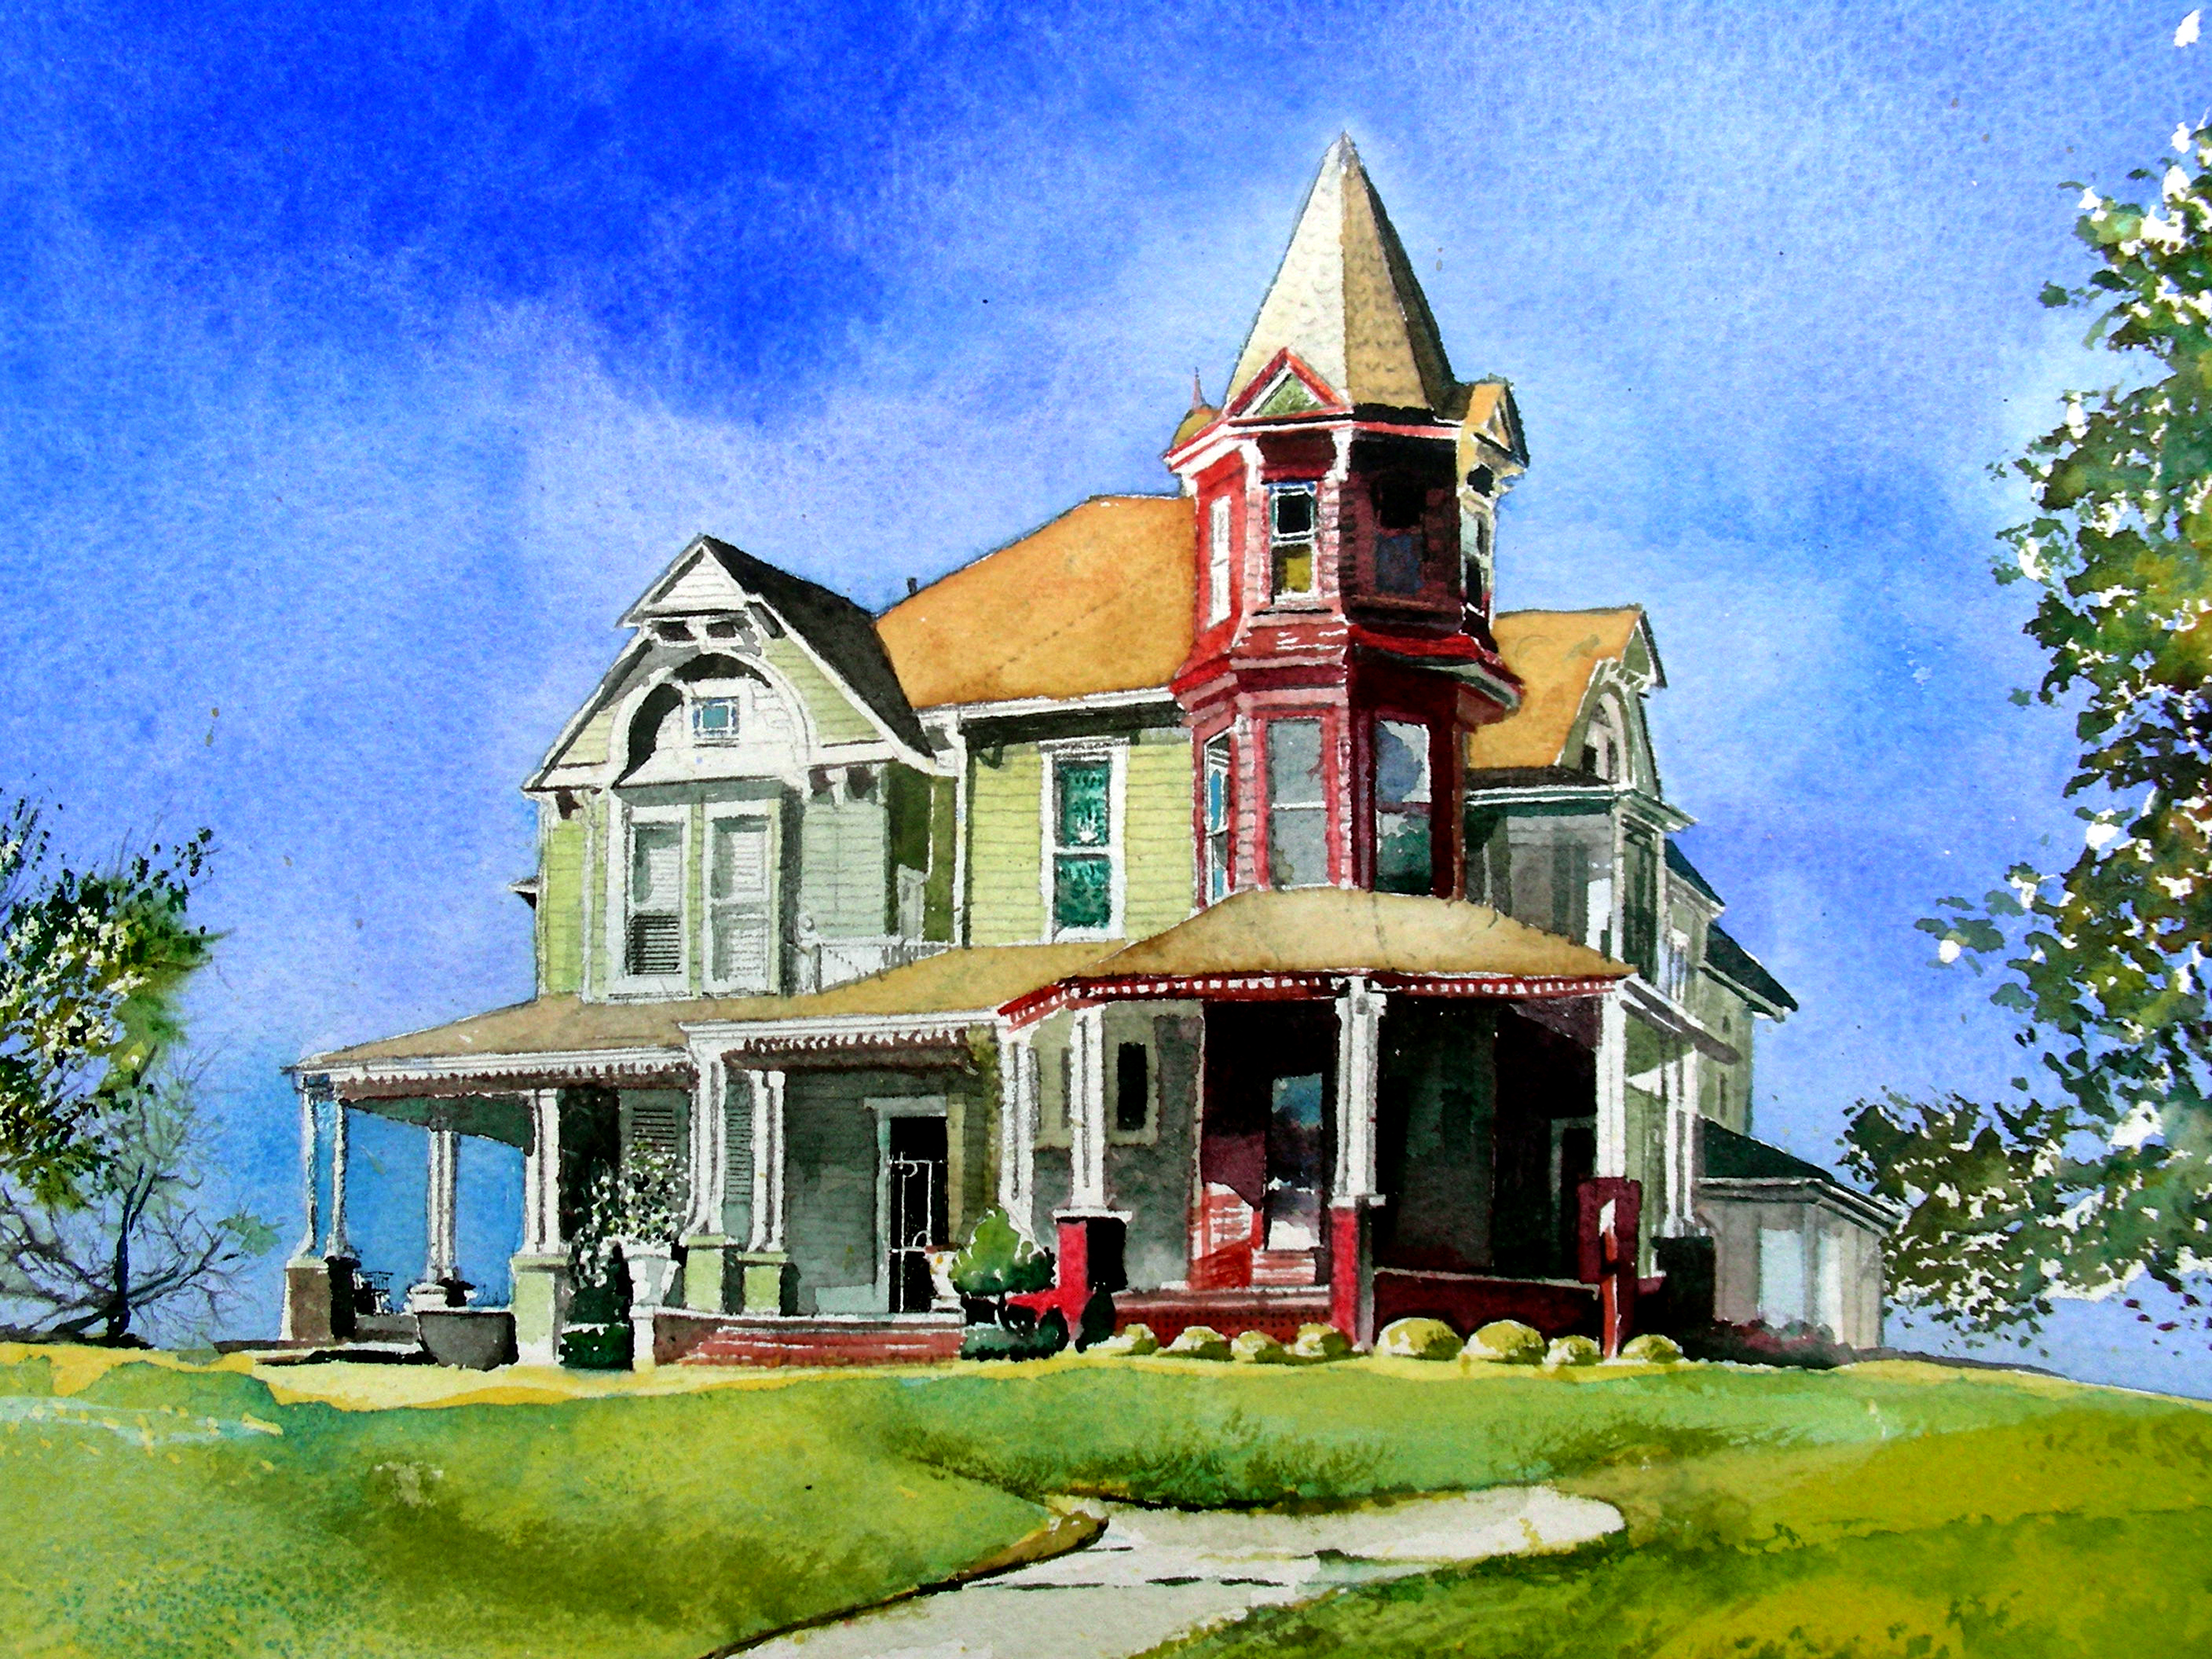 Victorian House | Recollections 54 The Art of David Tripp